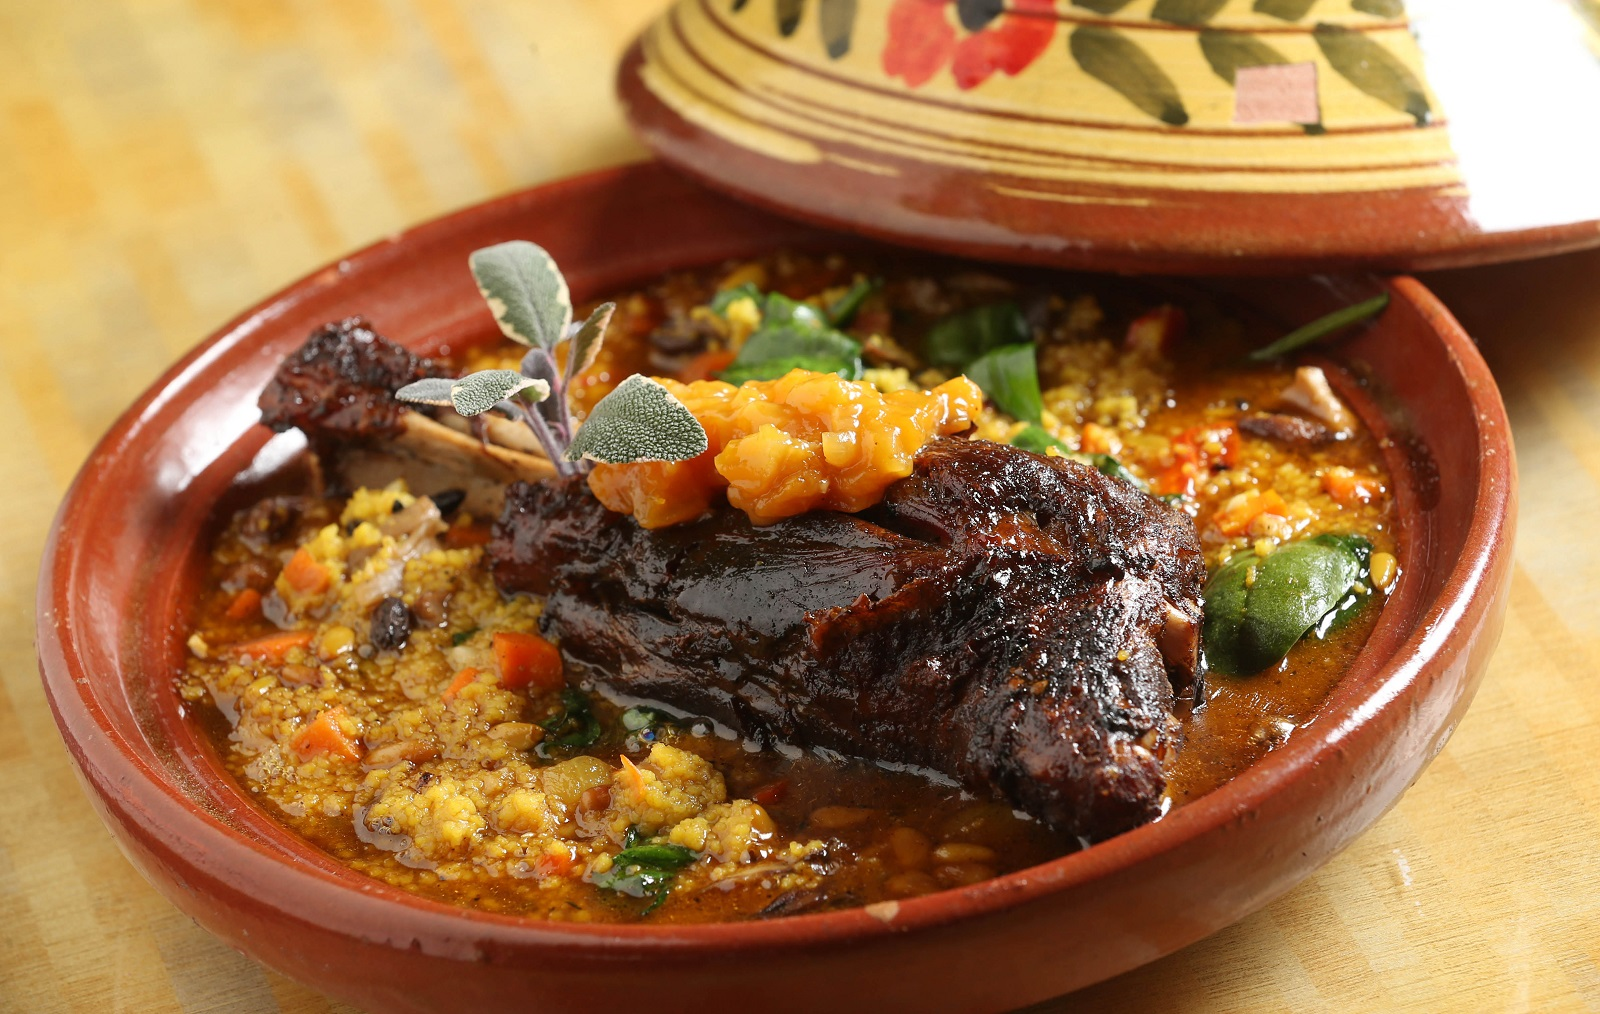 Fiero's lamb tangine is roasted lamb shank served on Israeli couscous with roasted seasonal vegetables topped with apricot chutney. (Sharon Cantillon/Buffalo News)